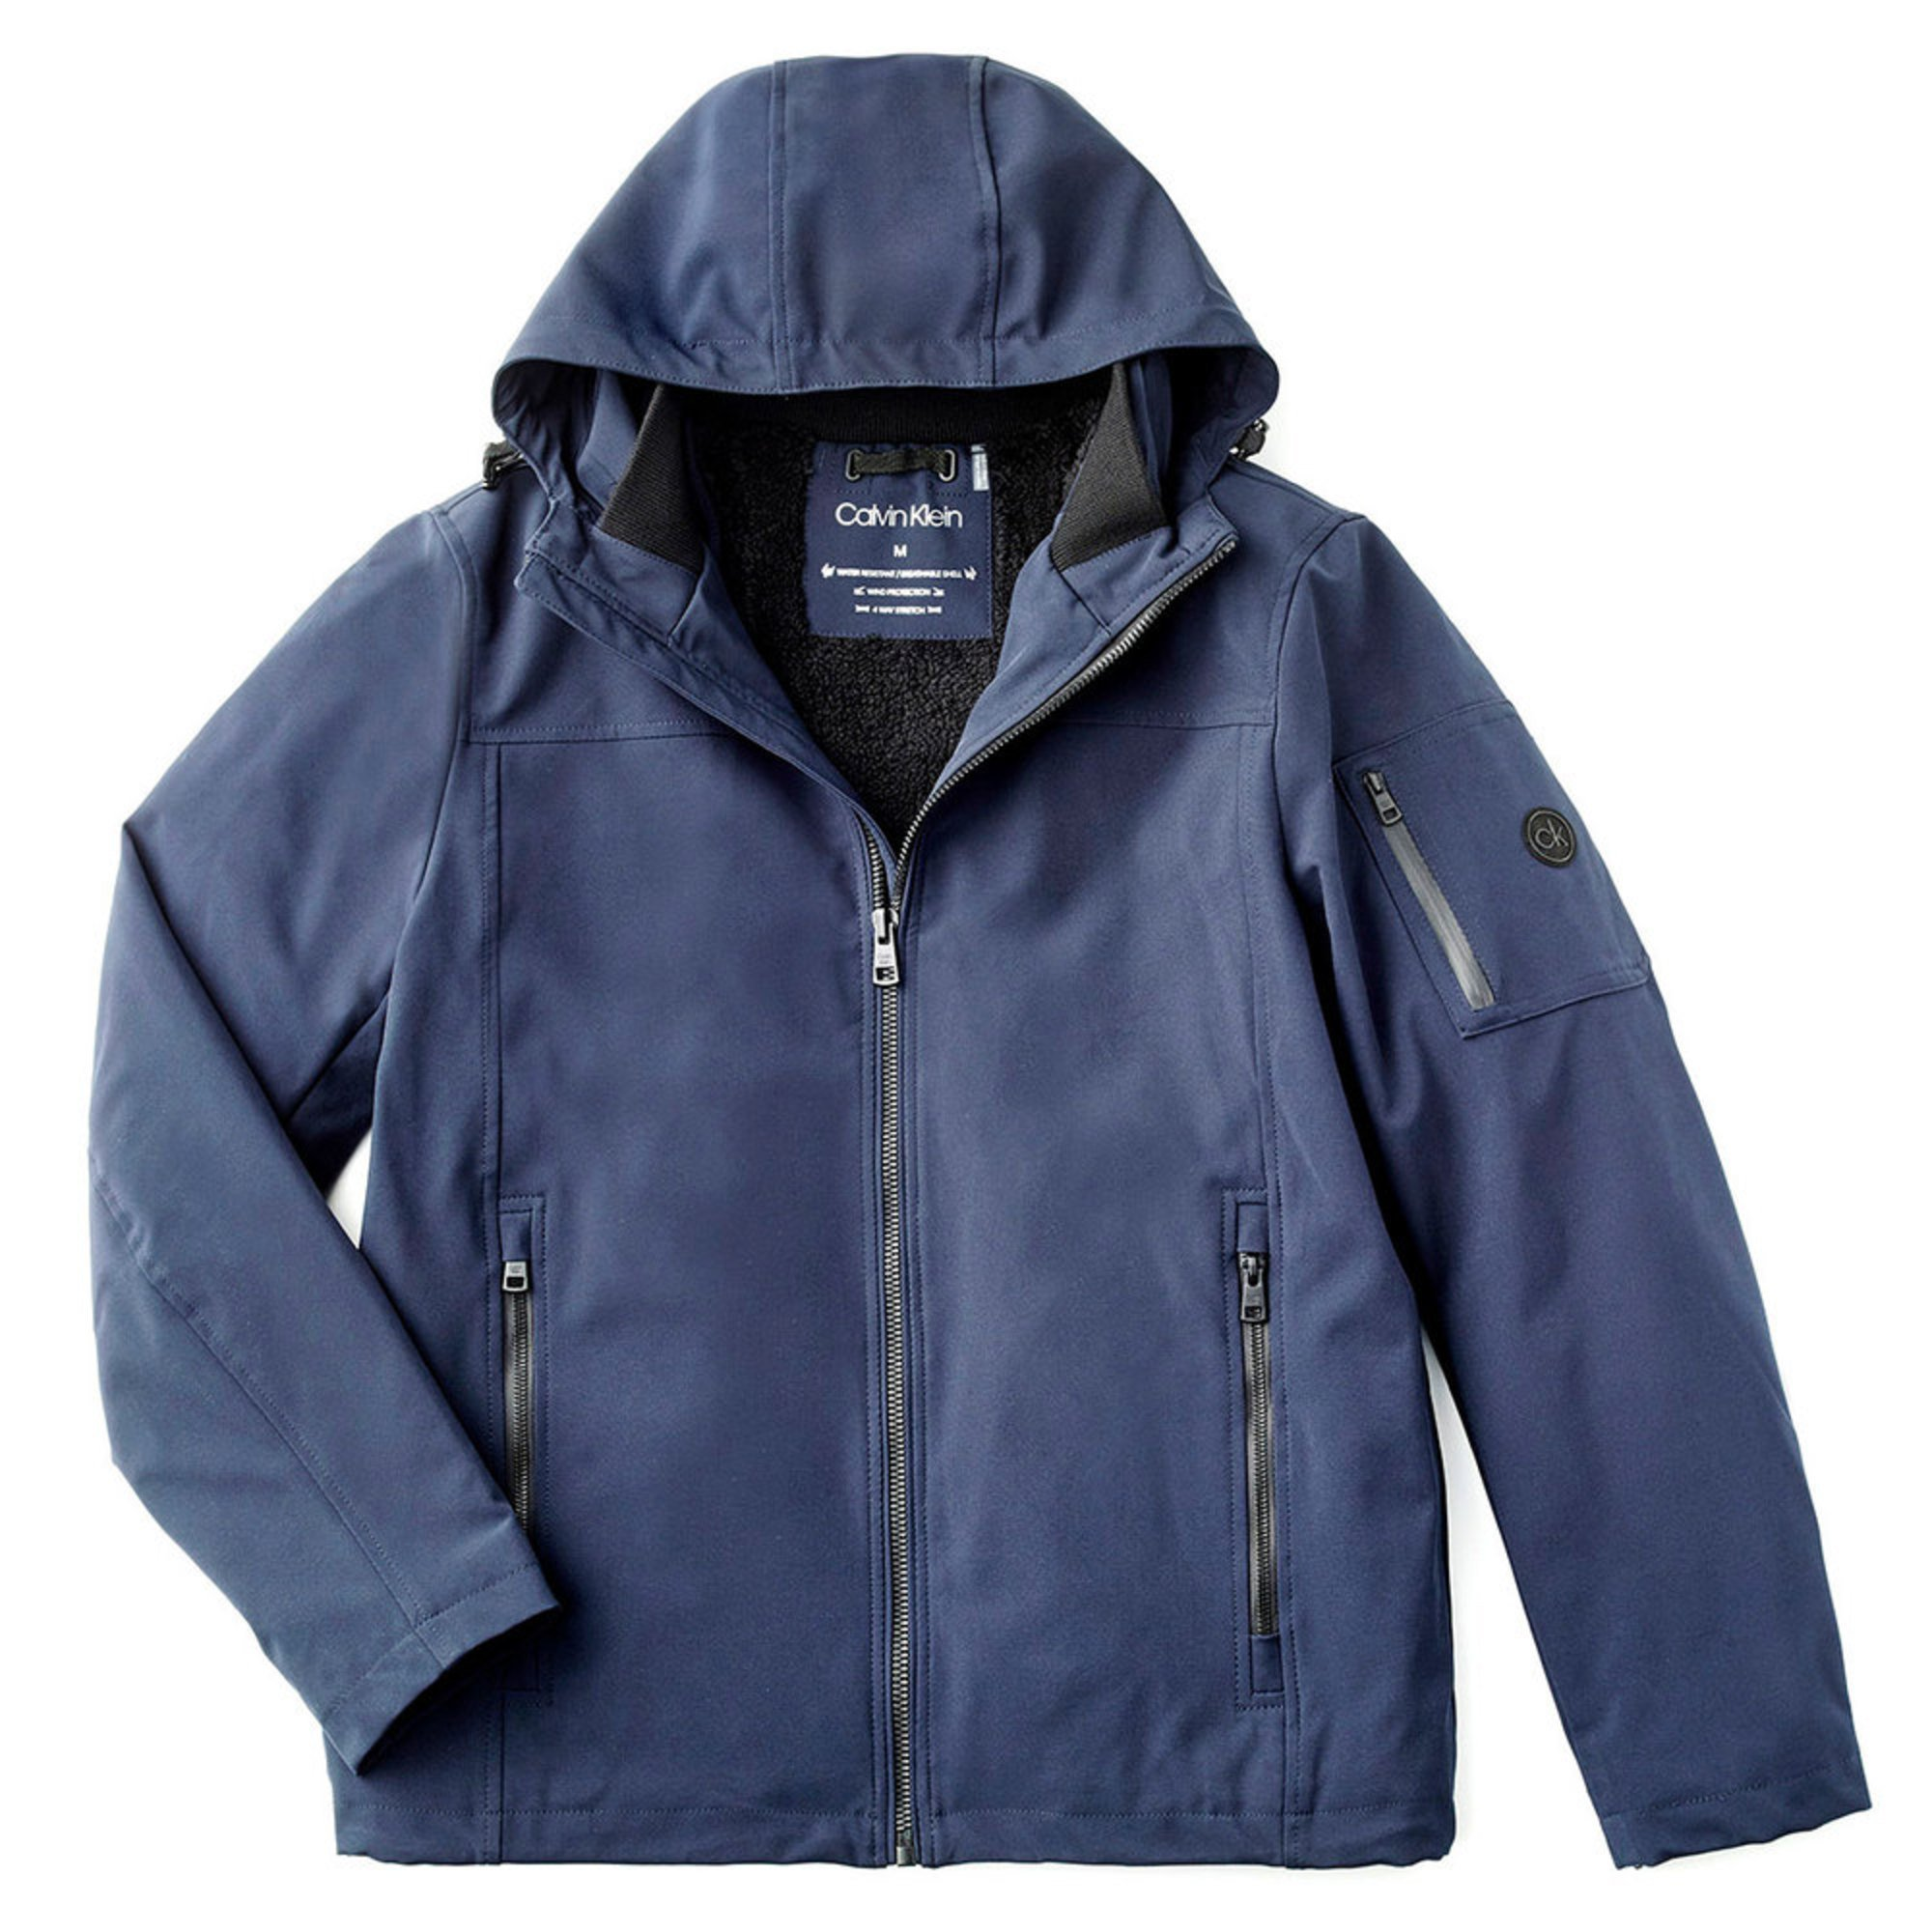 5b3646afe46 Calvin Klein Men s Softshell with Mesh Back and Sherpa Lining. MSRP.   199.00. Product Rating 0 Based on 0 reviews. 410